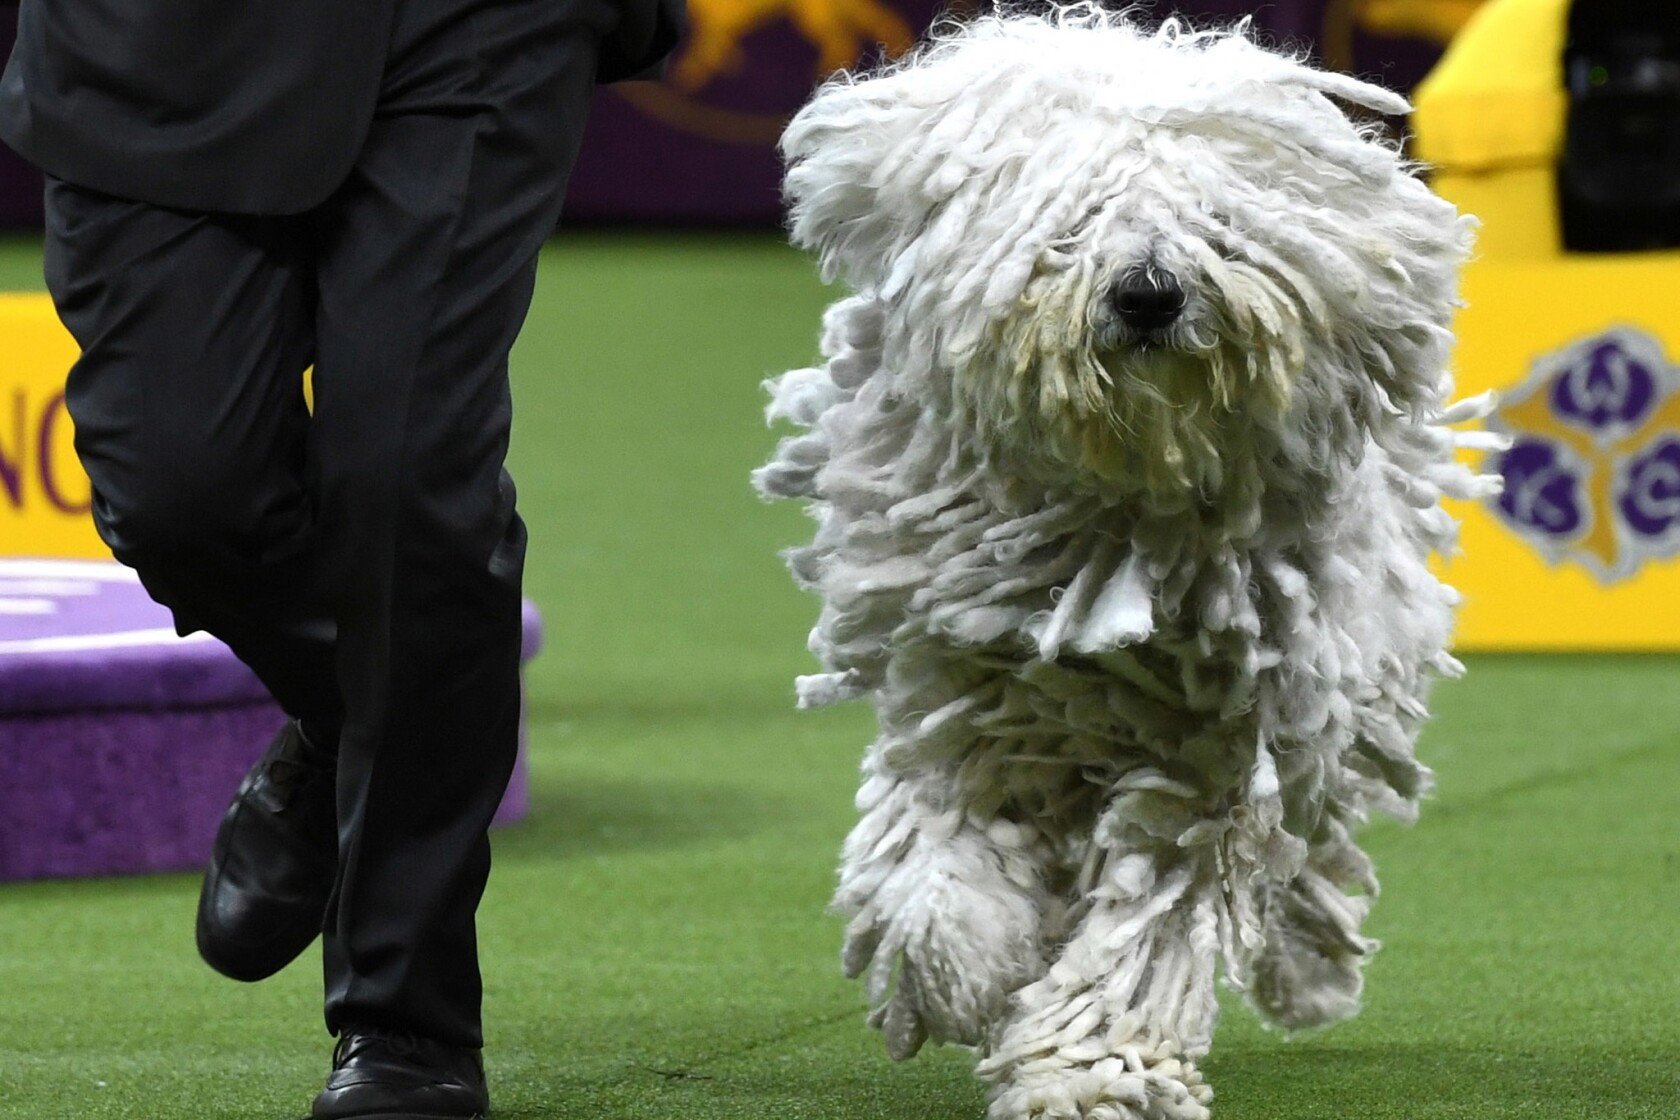 At Westminster dog show, King the wire fox terrier takes the